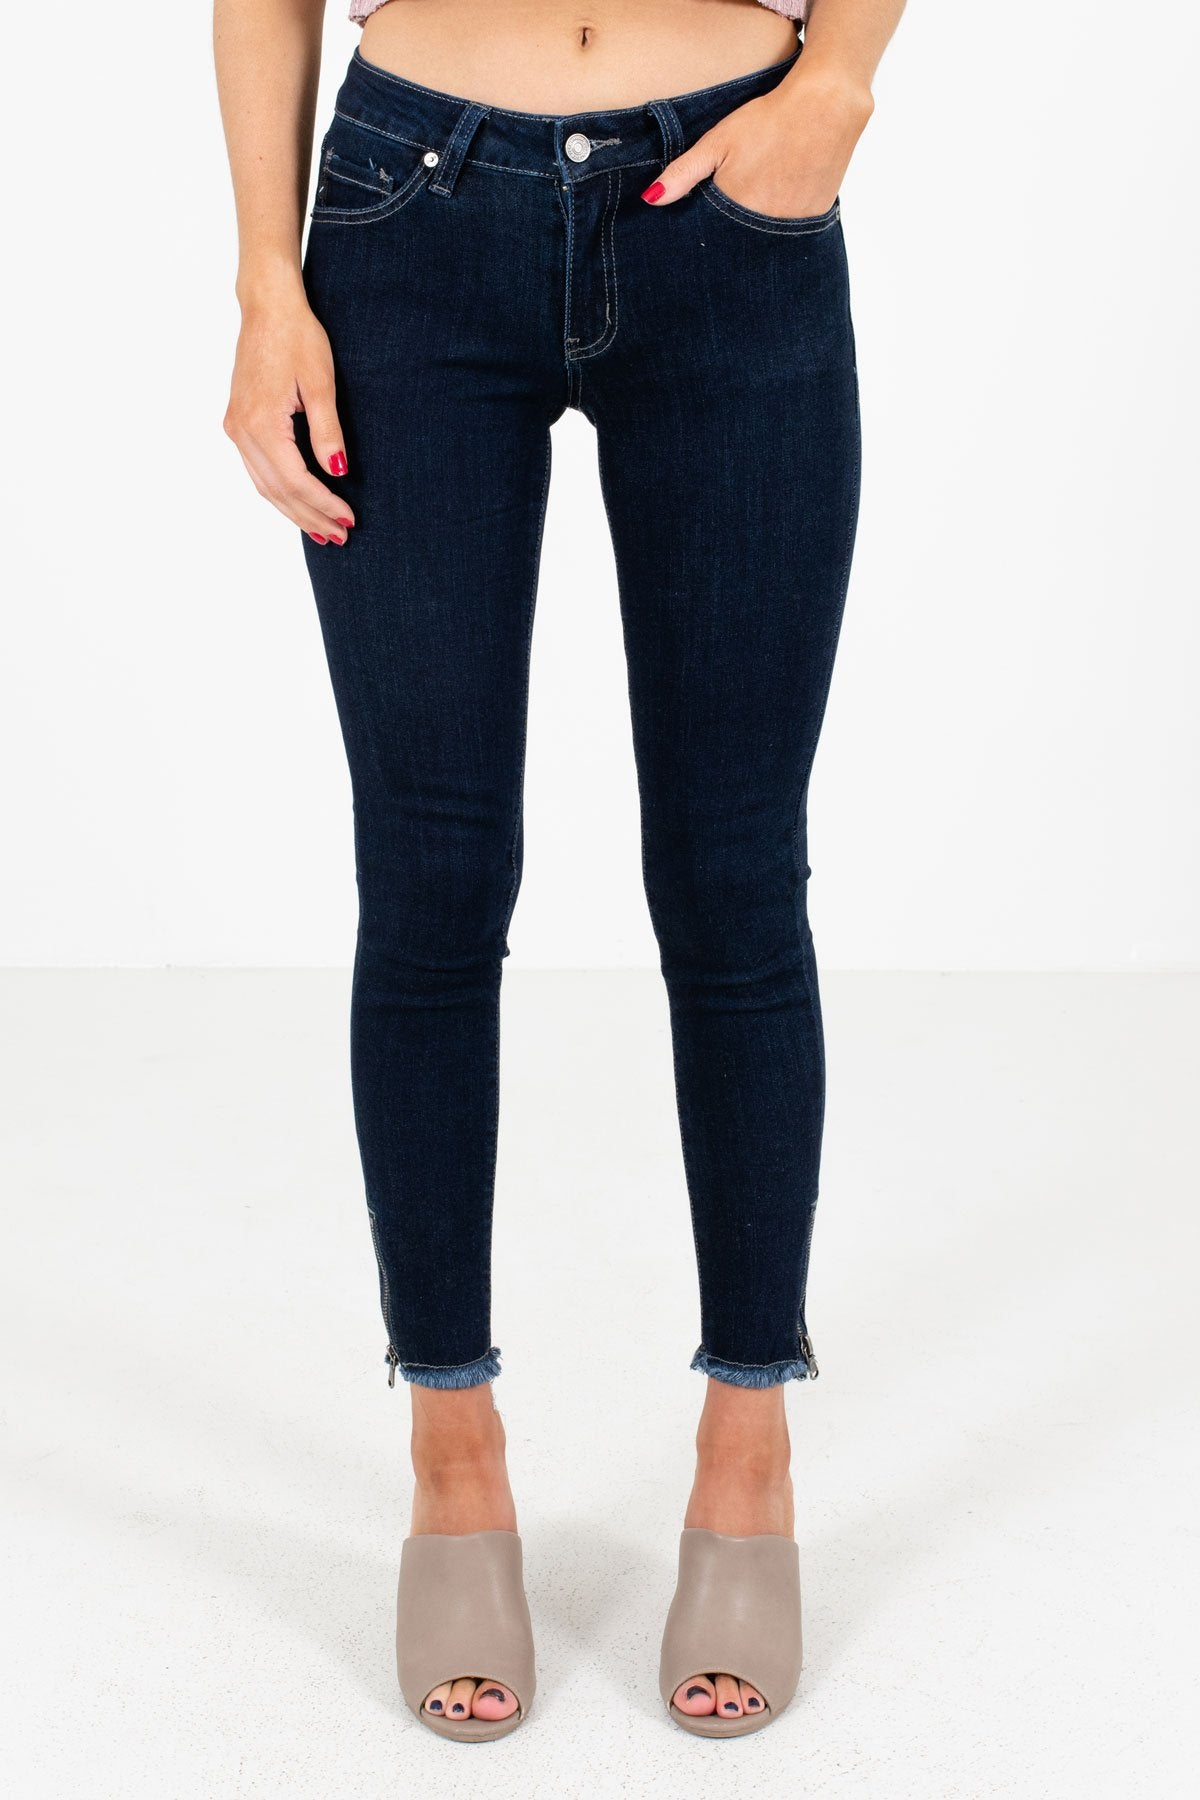 Dark Wash Blue KanCan Brand Boutique Jeans for Women